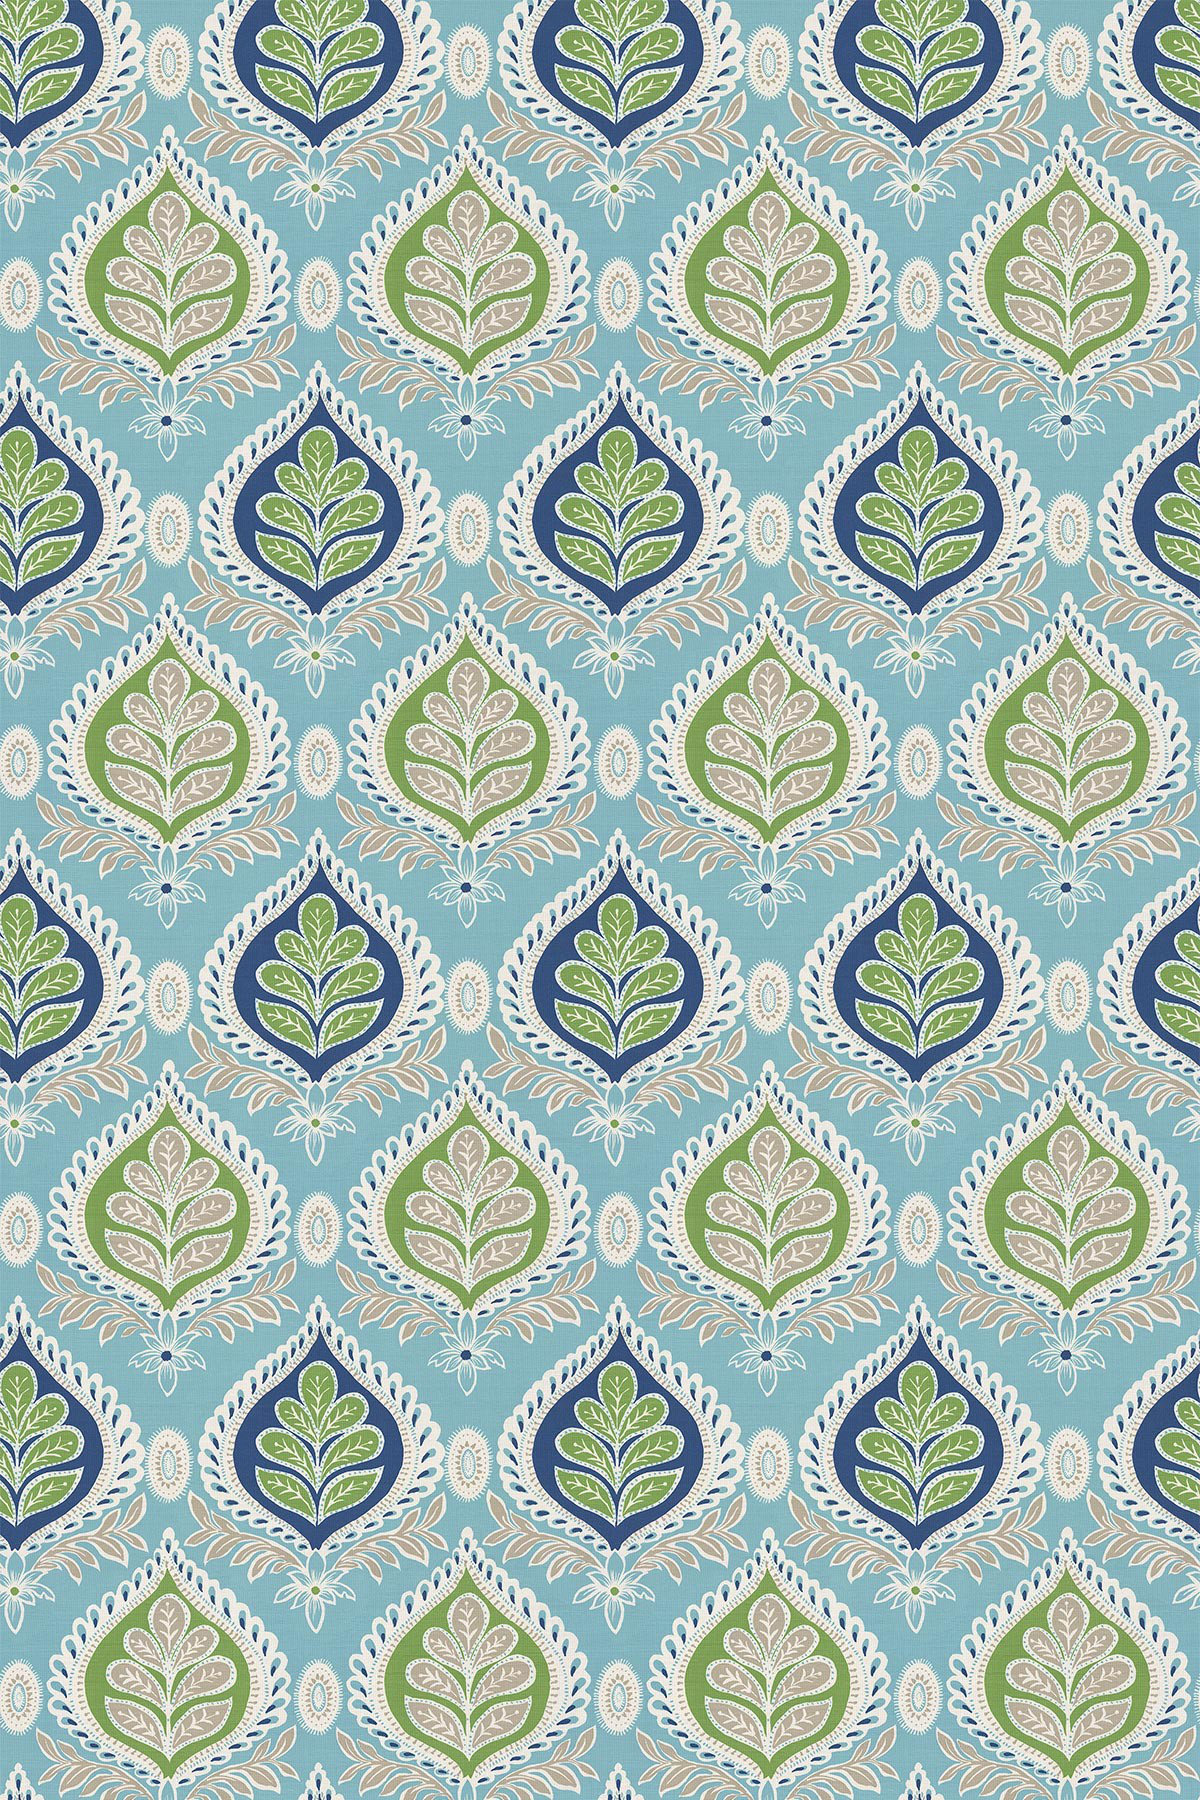 Image of Thibaut Fabric Midland, F924316